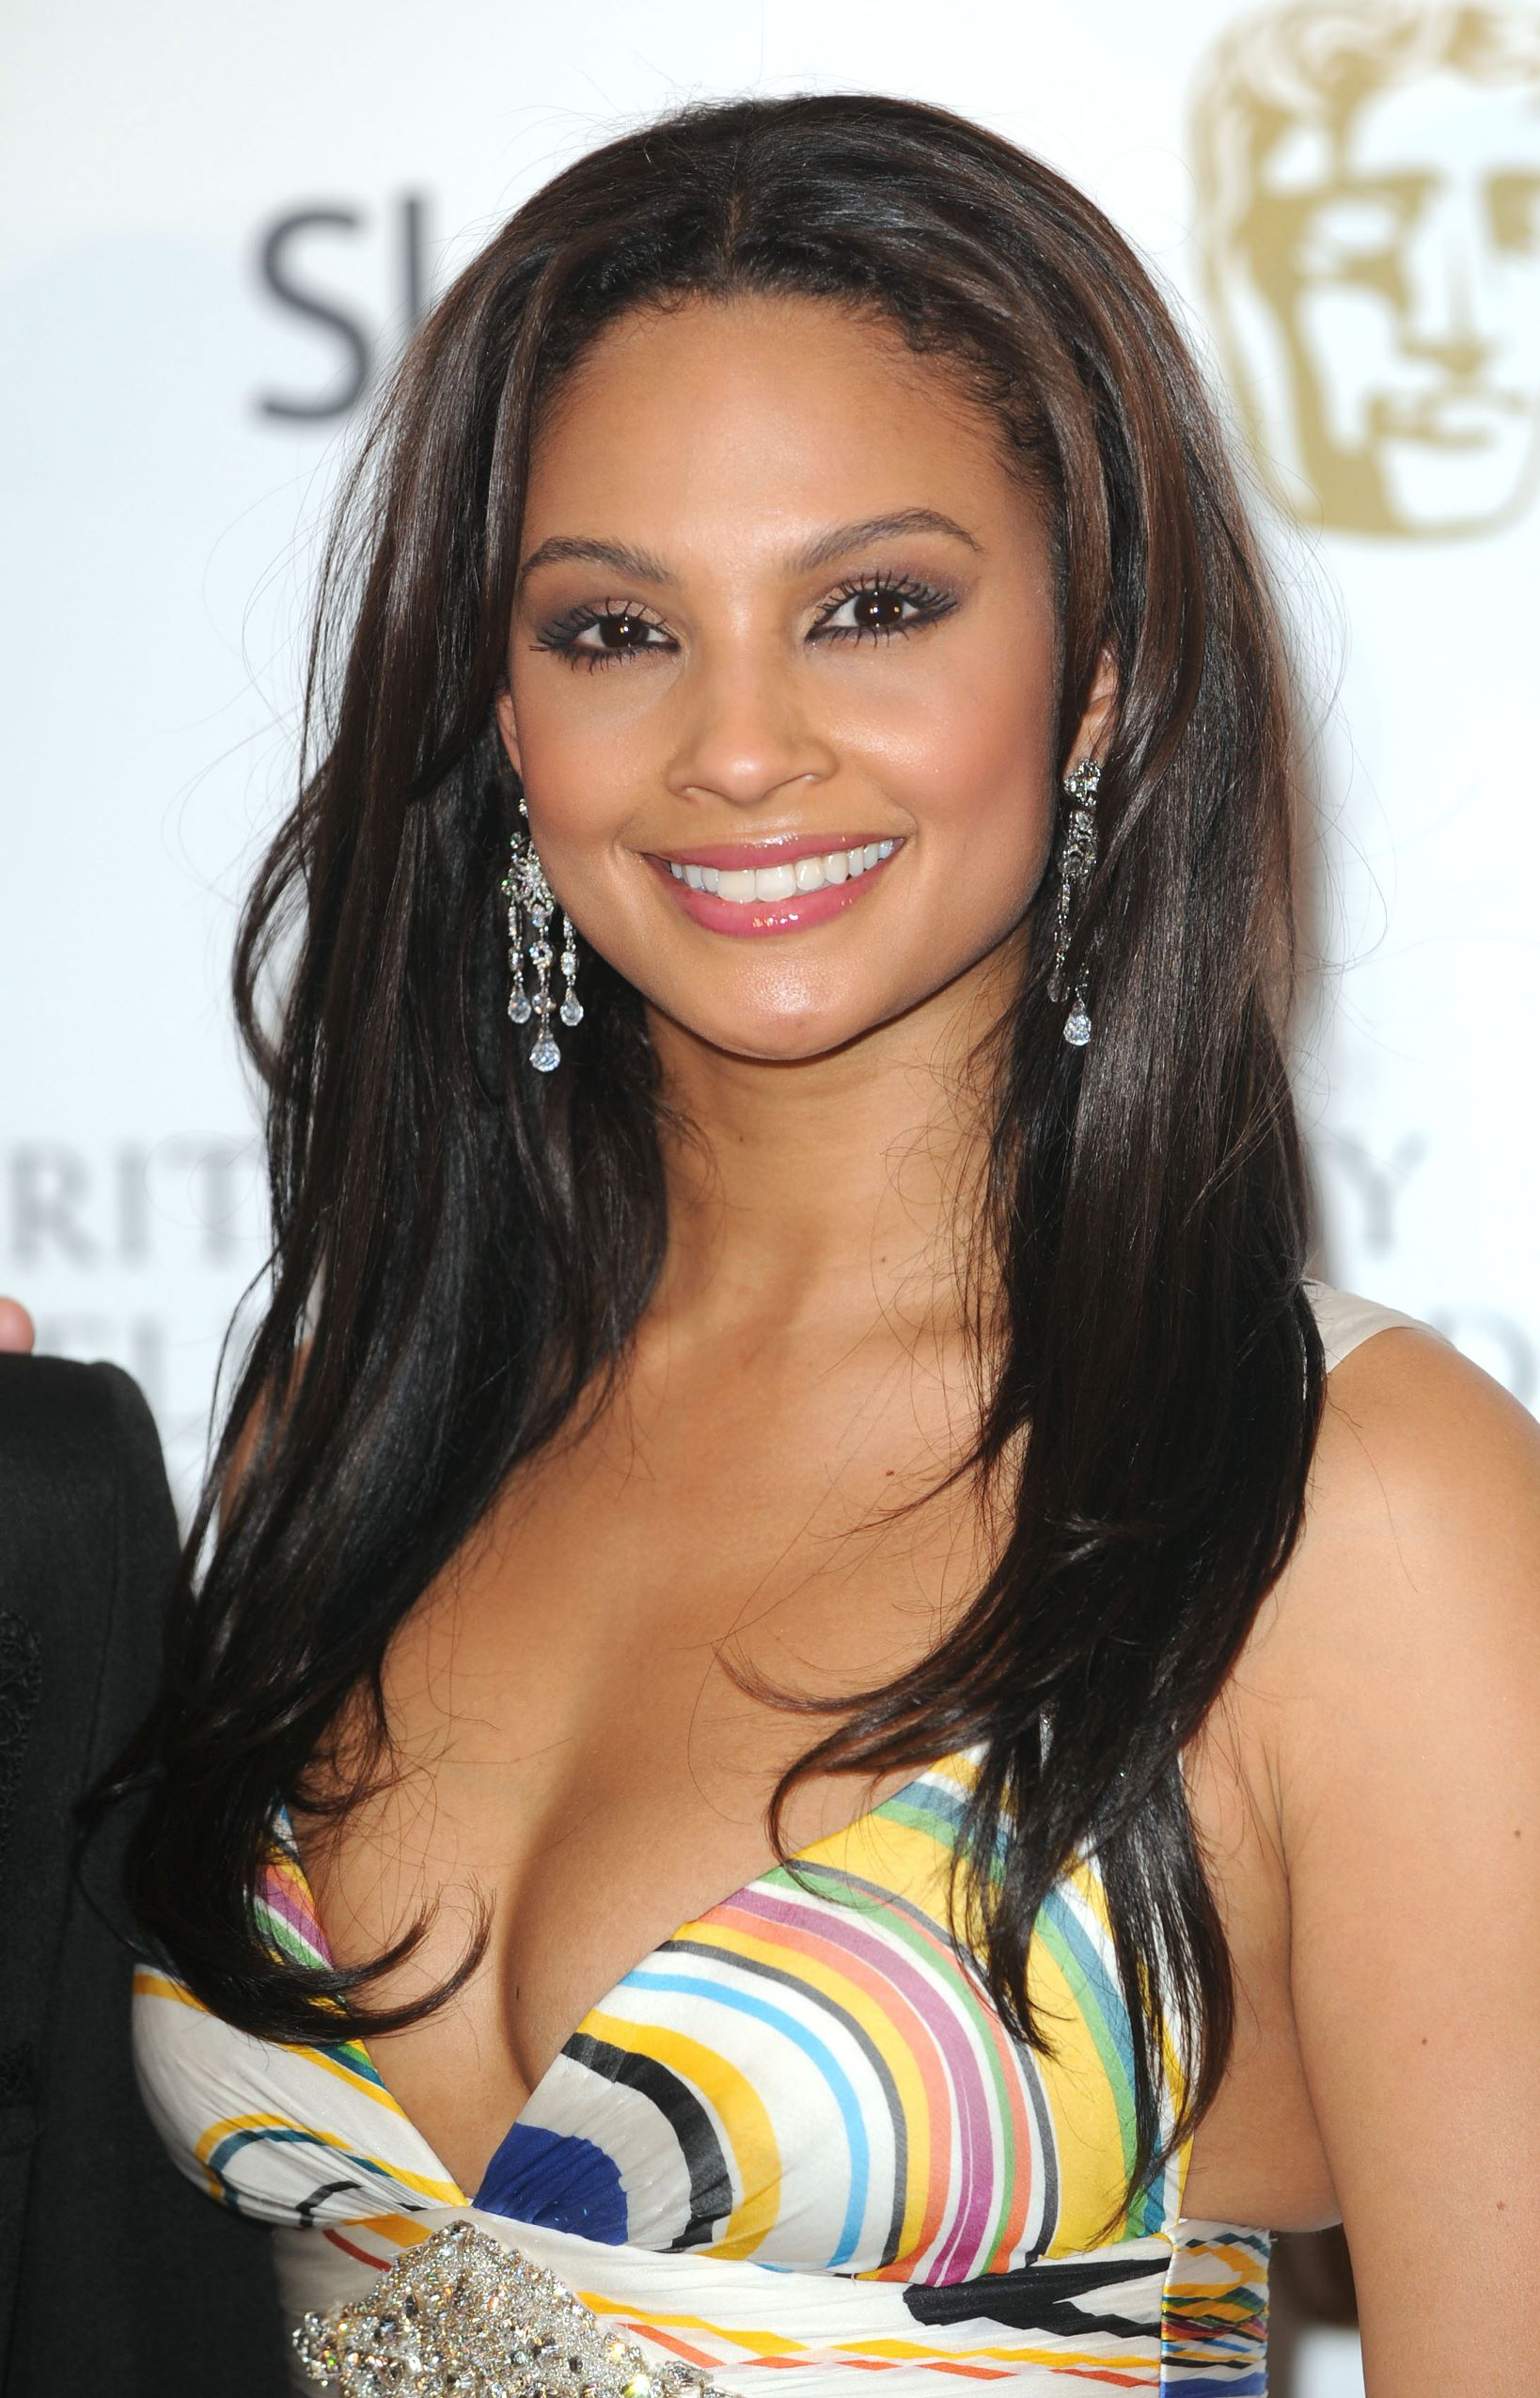 Fotos Alesha Dixon nude (45 foto and video), Sexy, Leaked, Boobs, swimsuit 2017